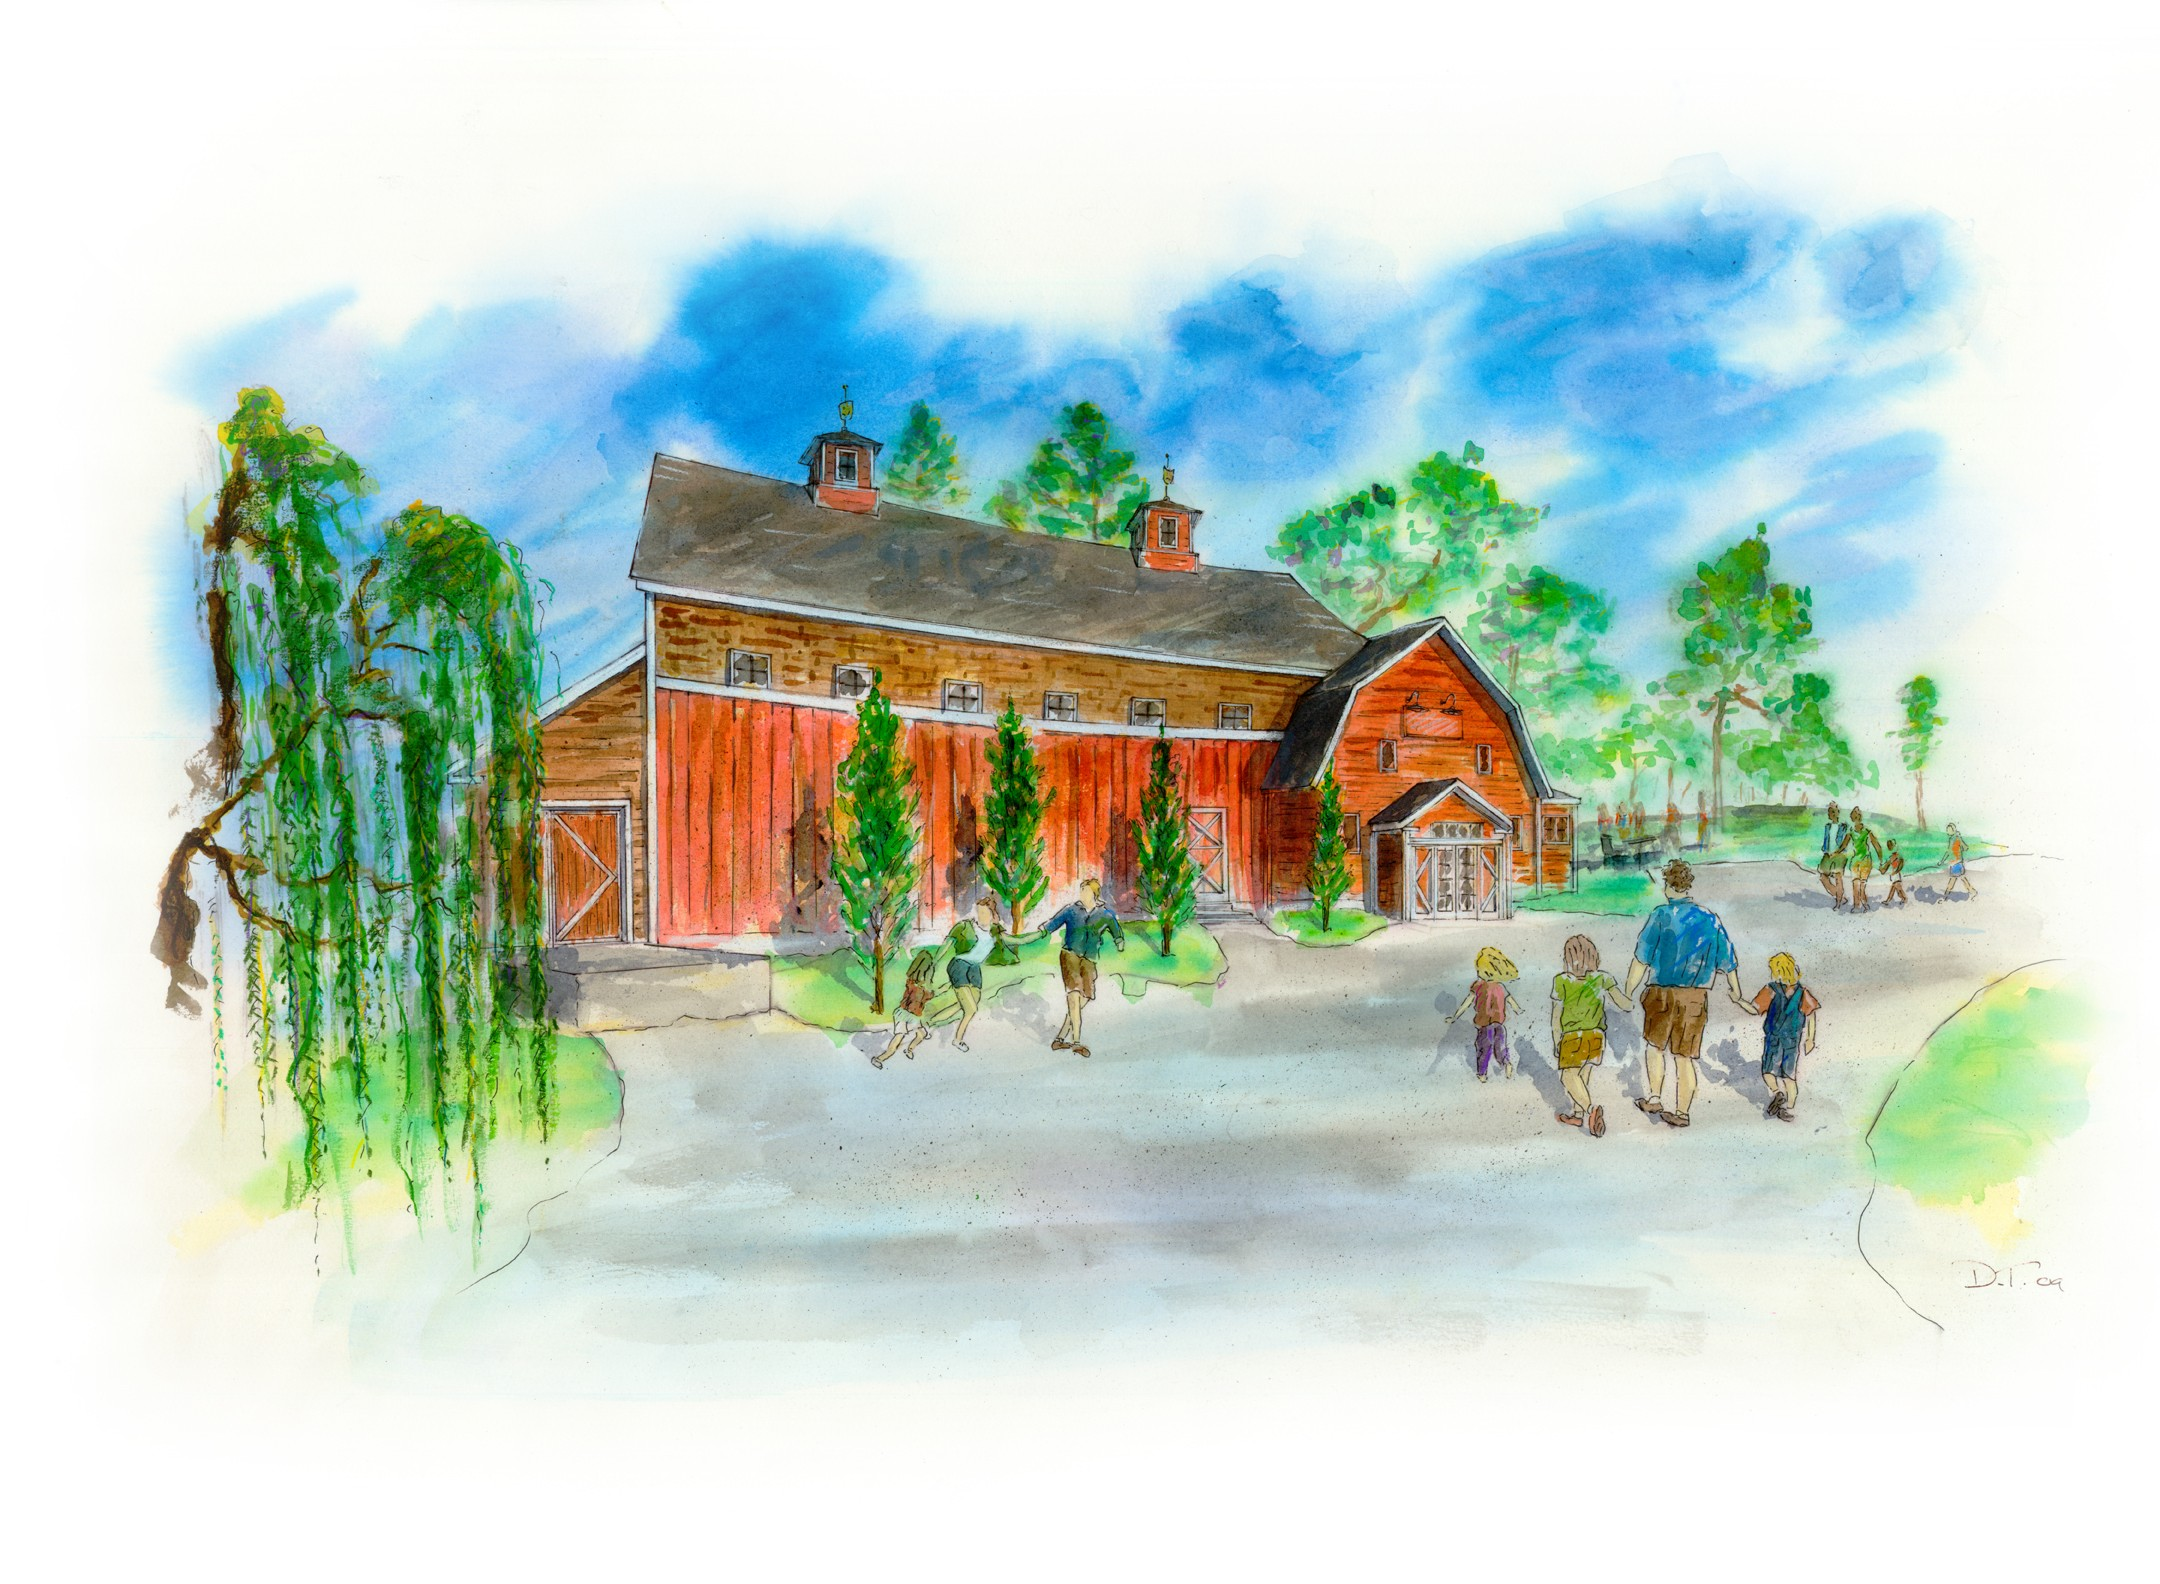 Matching Pledge Offered to Jumpstart Fundraising for Winni Playhouse Construction in Meredith